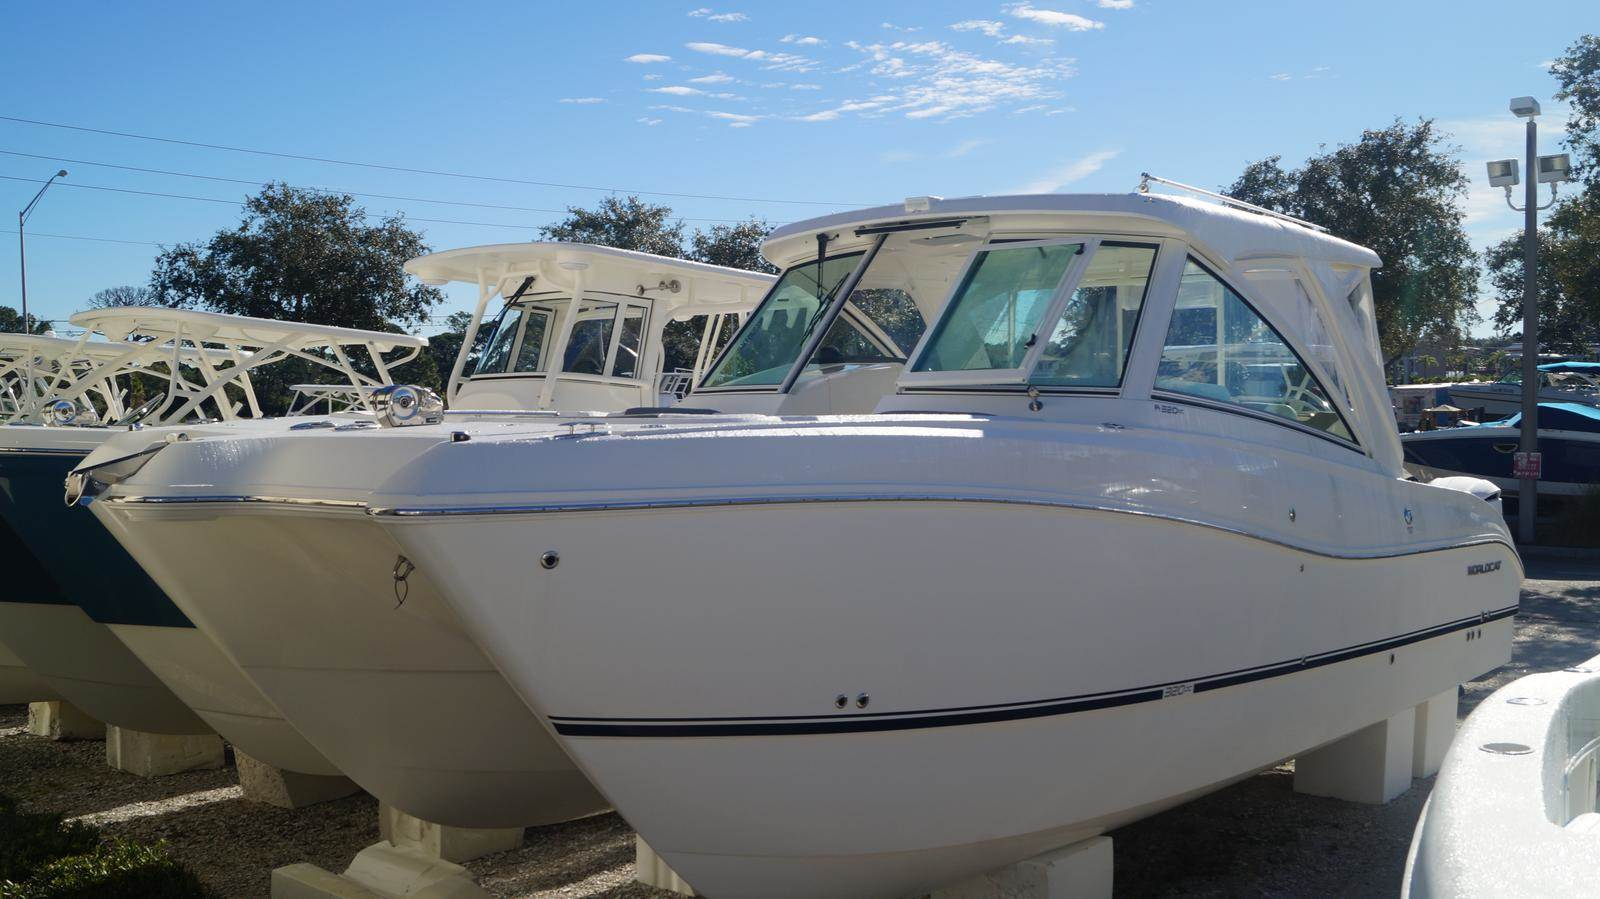 NEW 2019 World Cat 320DC Dual Console - Sara Bay Marina